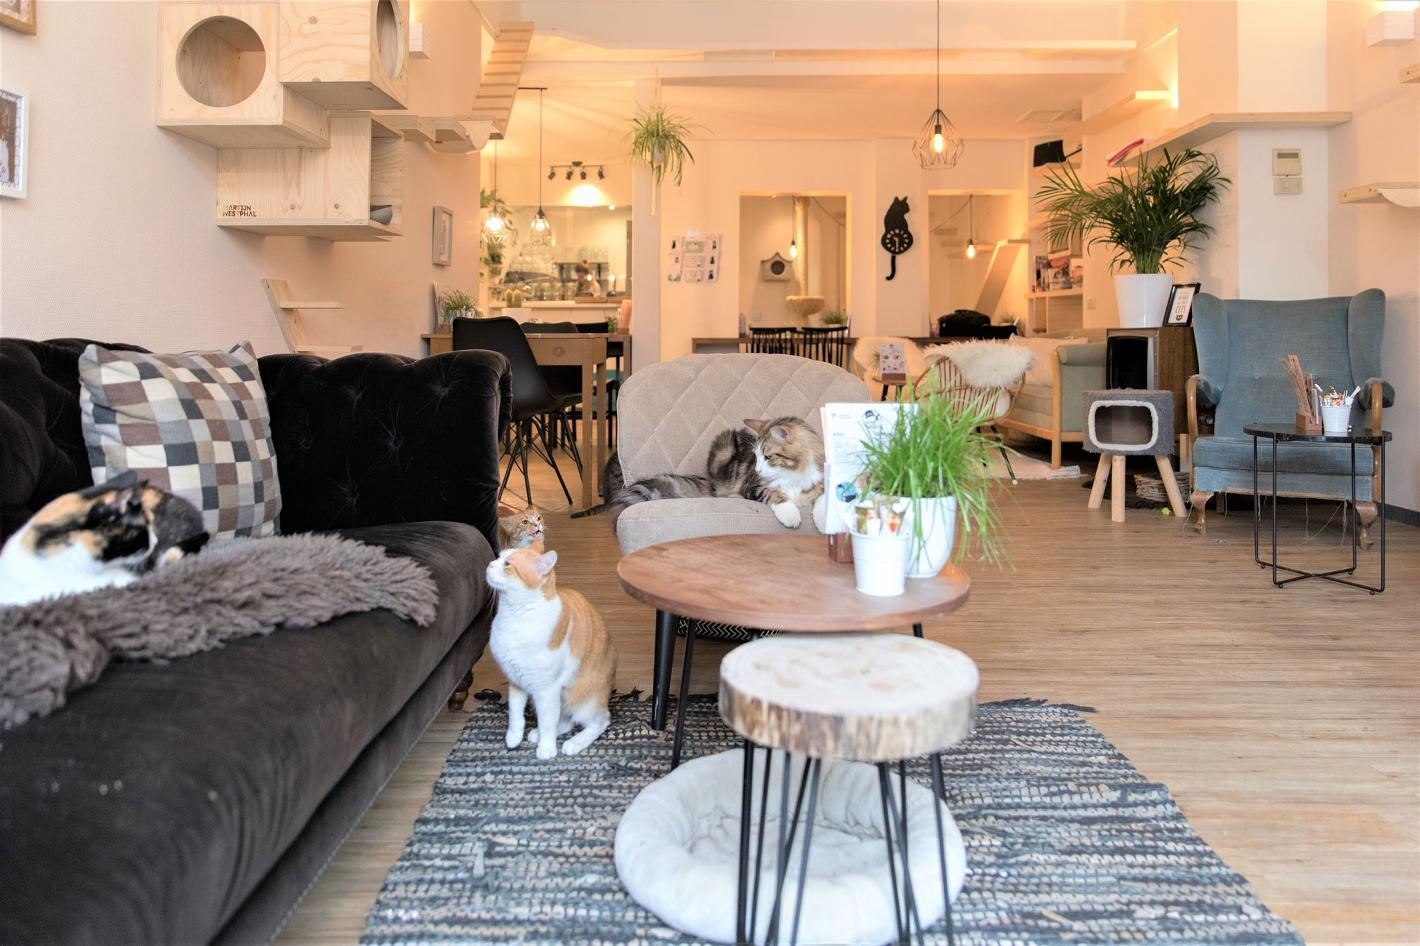 Photo Kattencafé Op z'n Kop in Groningen, Eat & drink, Coffee, tea & cakes, Lunch - #1